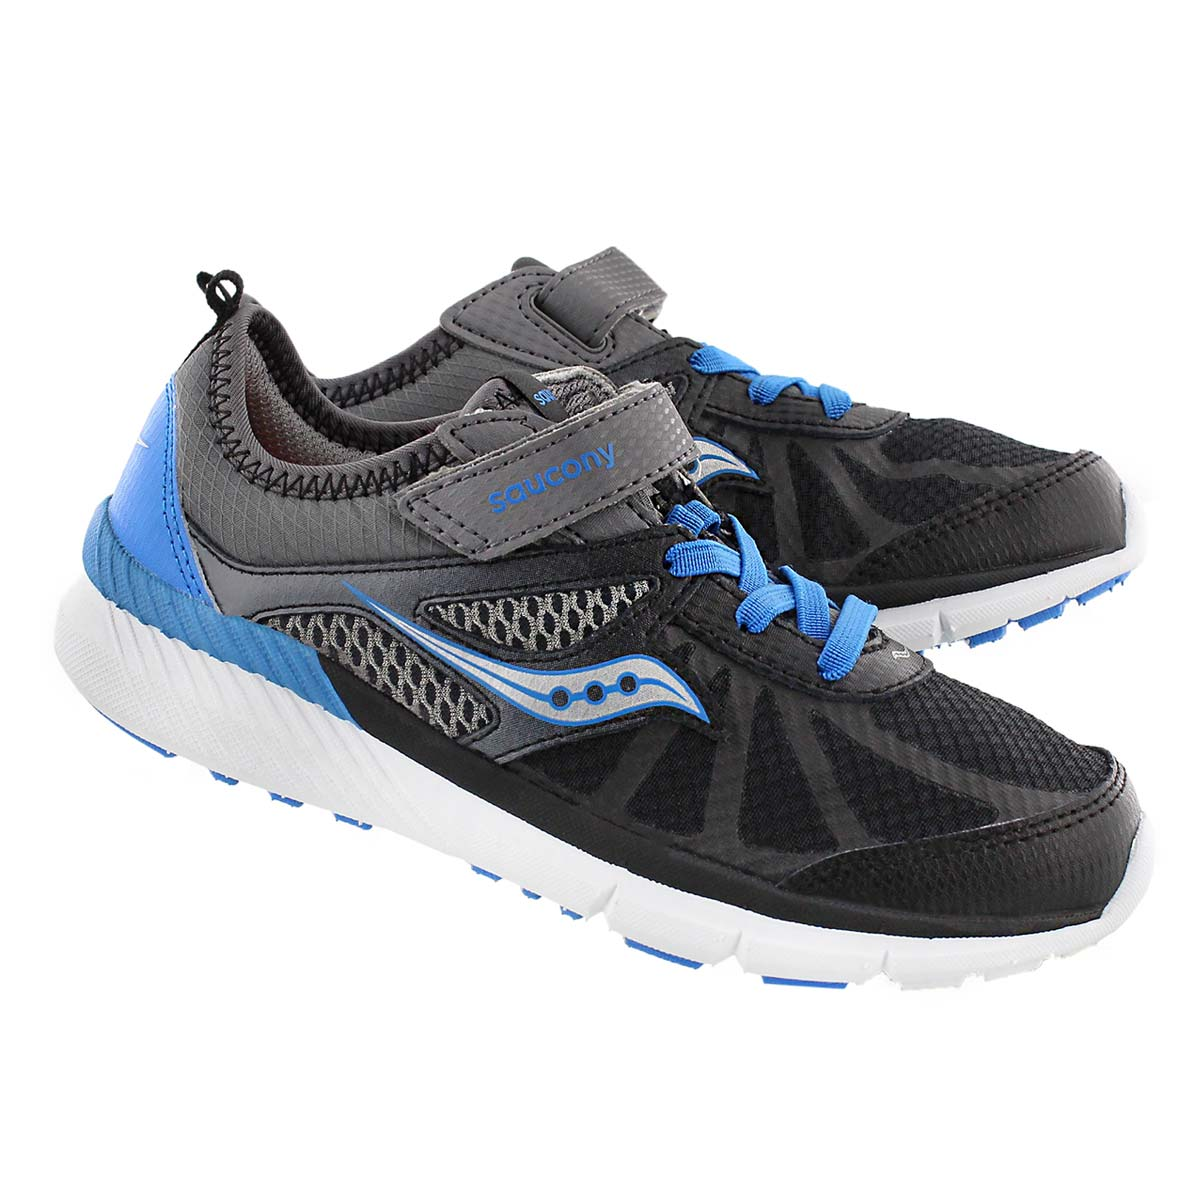 Bys Volt gry/blk/blu running shoe